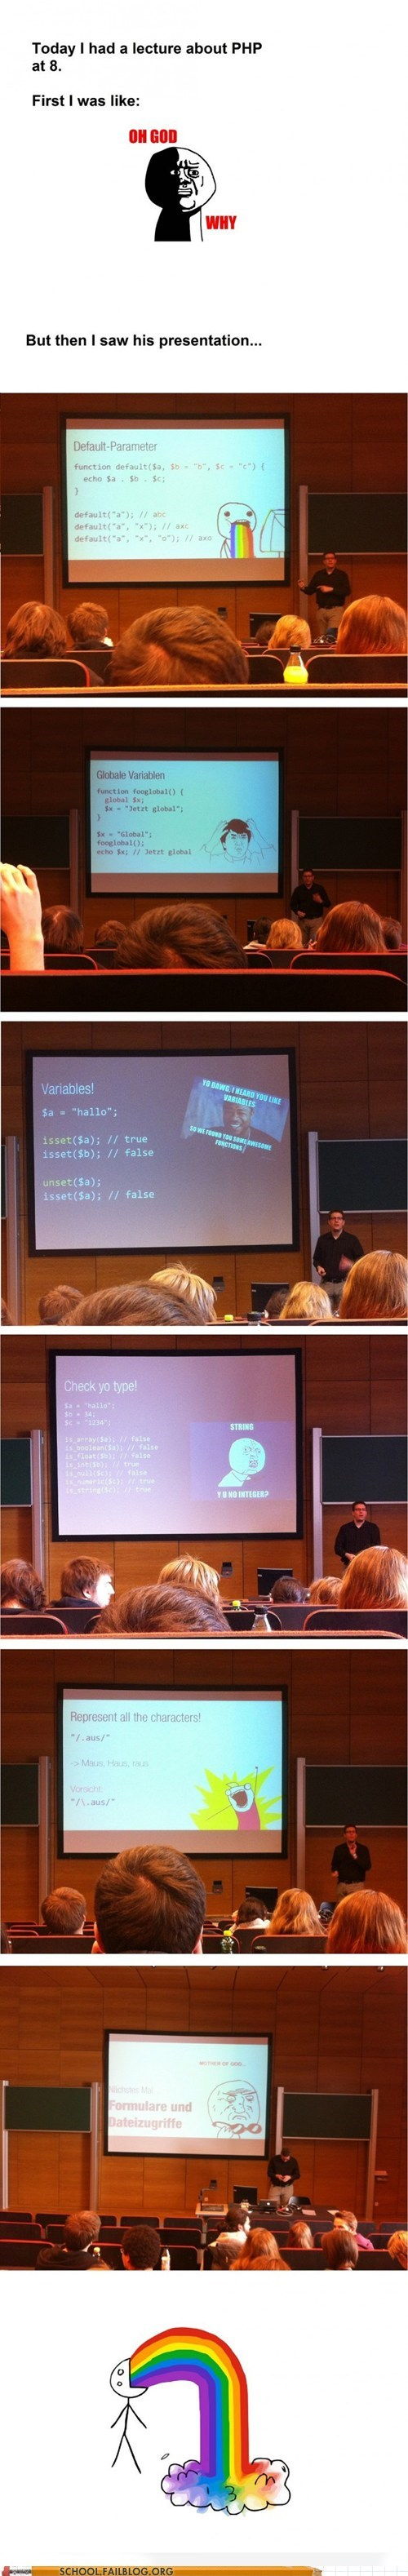 g rated memes 101 presentations School of FAIL use all the memes - 6008640768